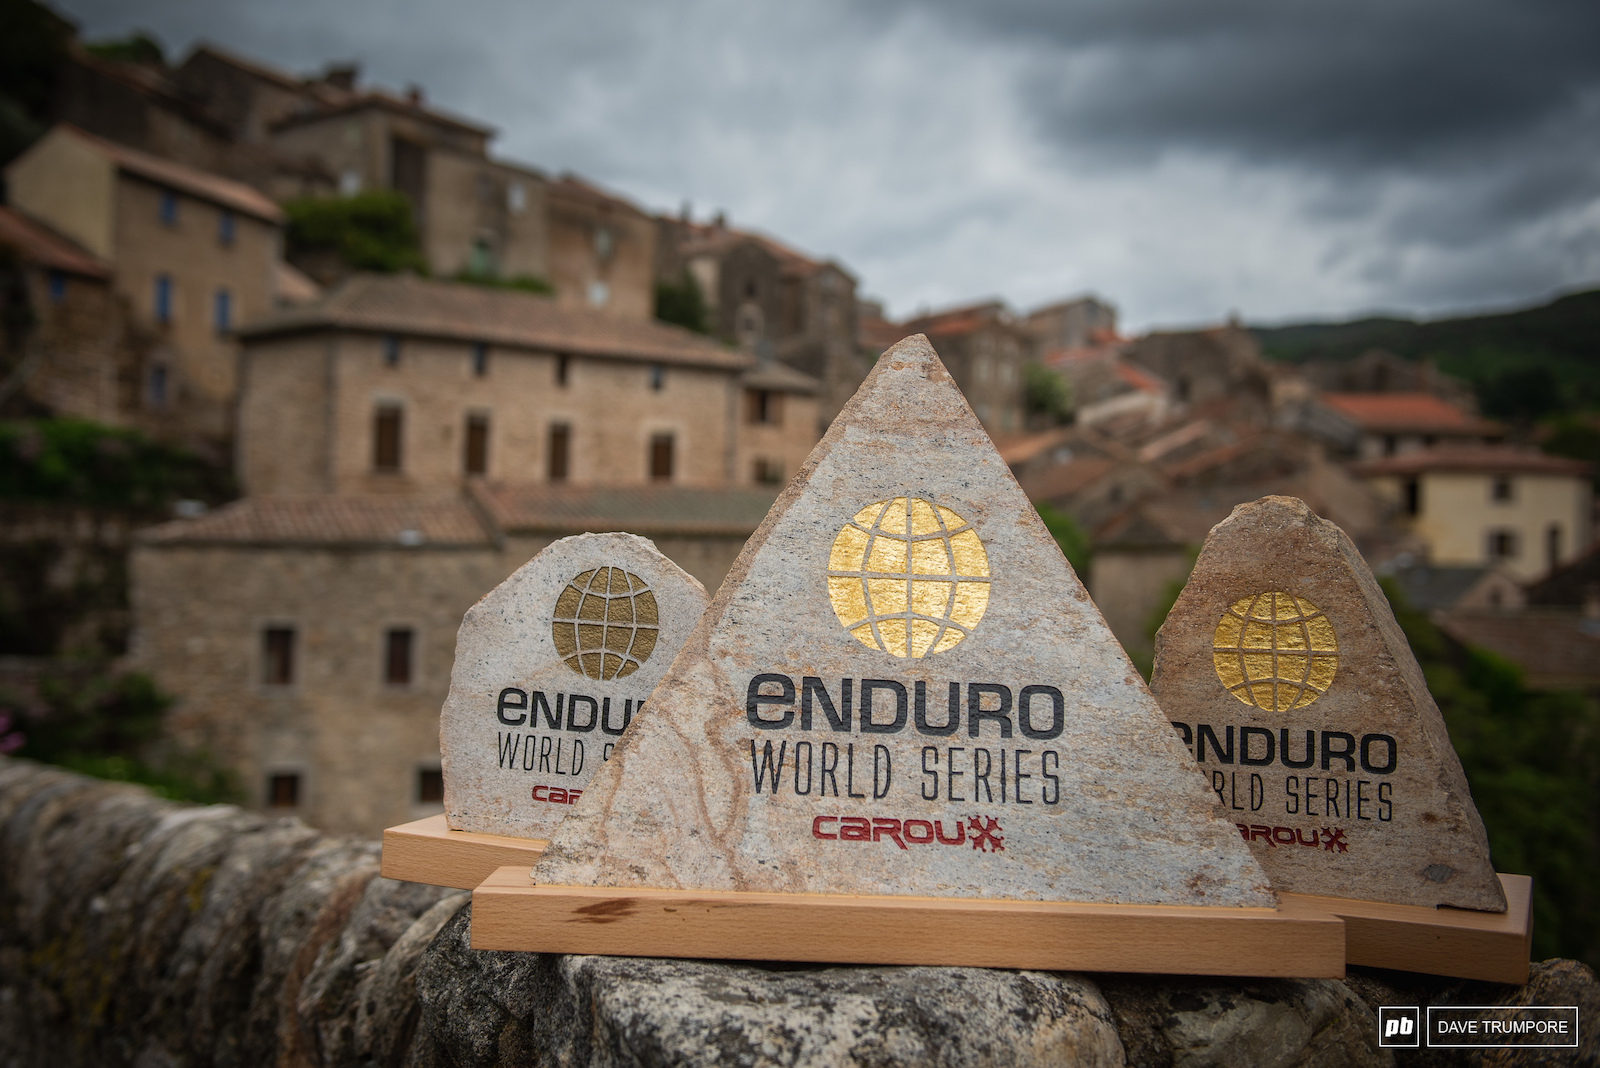 The trophies everyone is chasing in Olargues